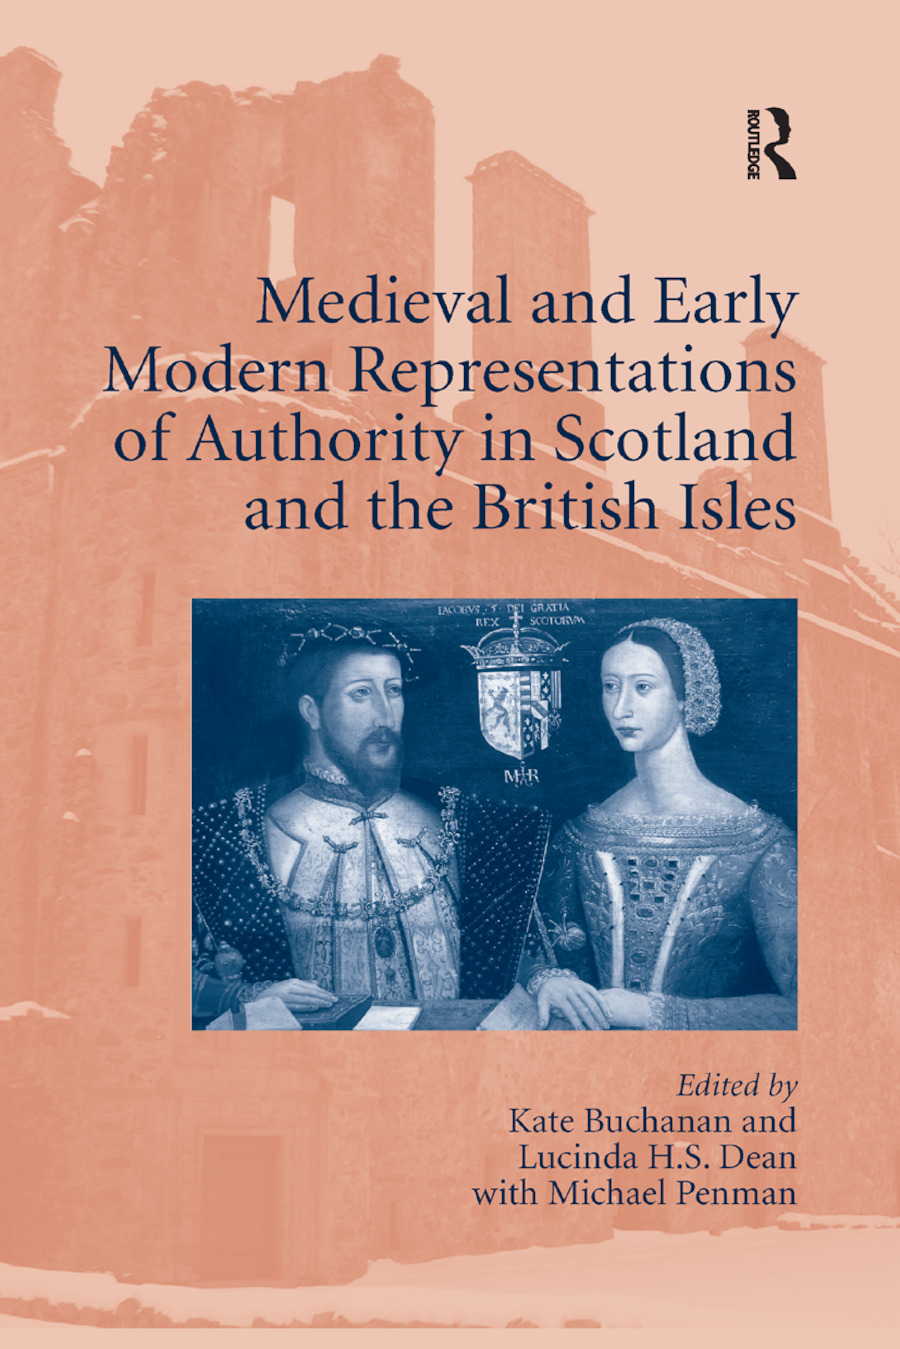 The Representations and Ambiguities of the Warlike Female Kingship of Elizabeth I of England